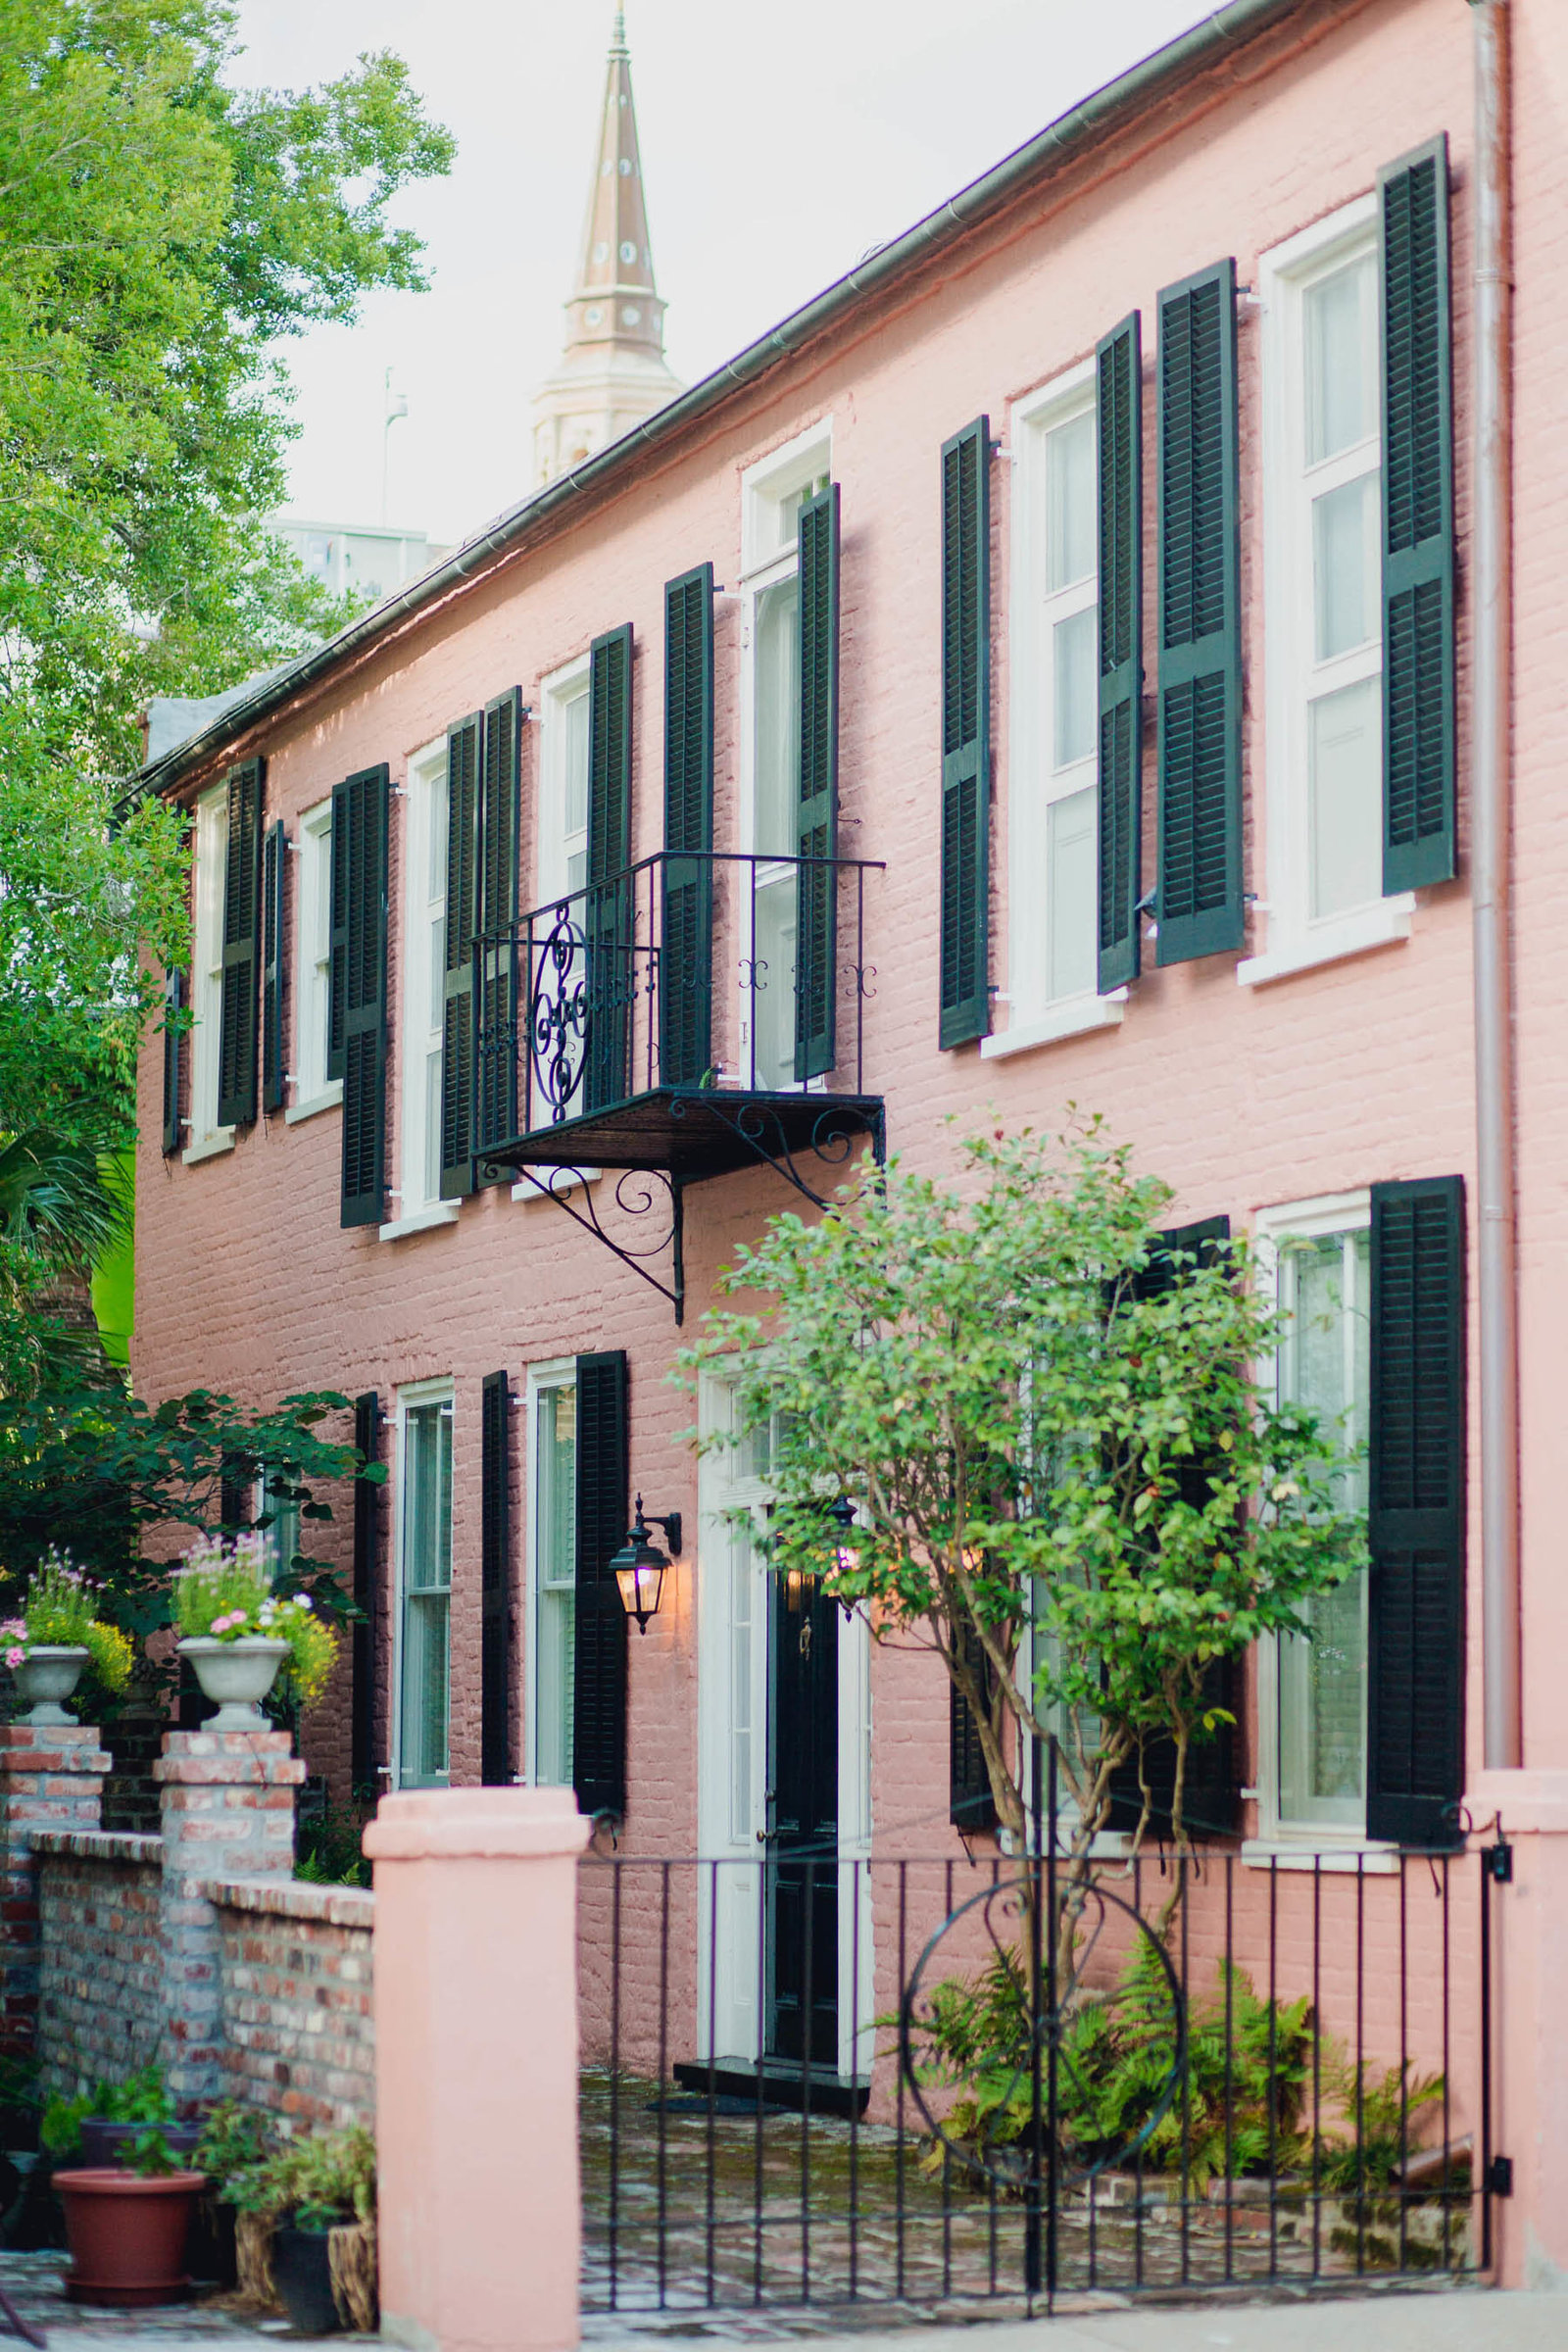 French Quarter home in Charleston, SC.